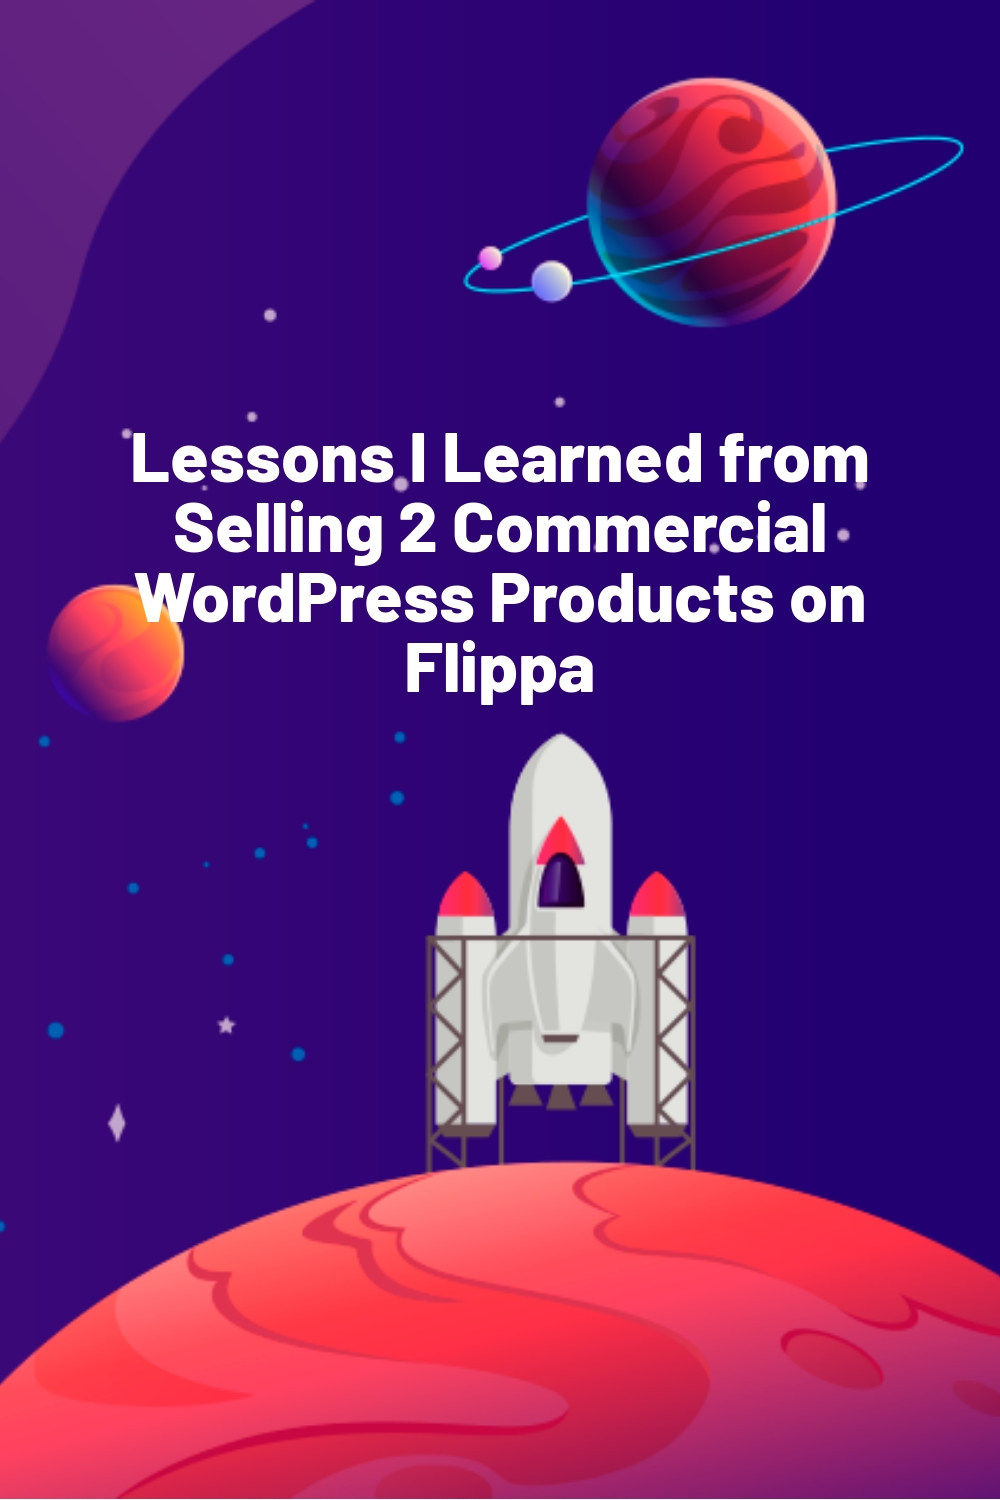 Lessons I Learned from Selling 2 Commercial WordPress Products on Flippa